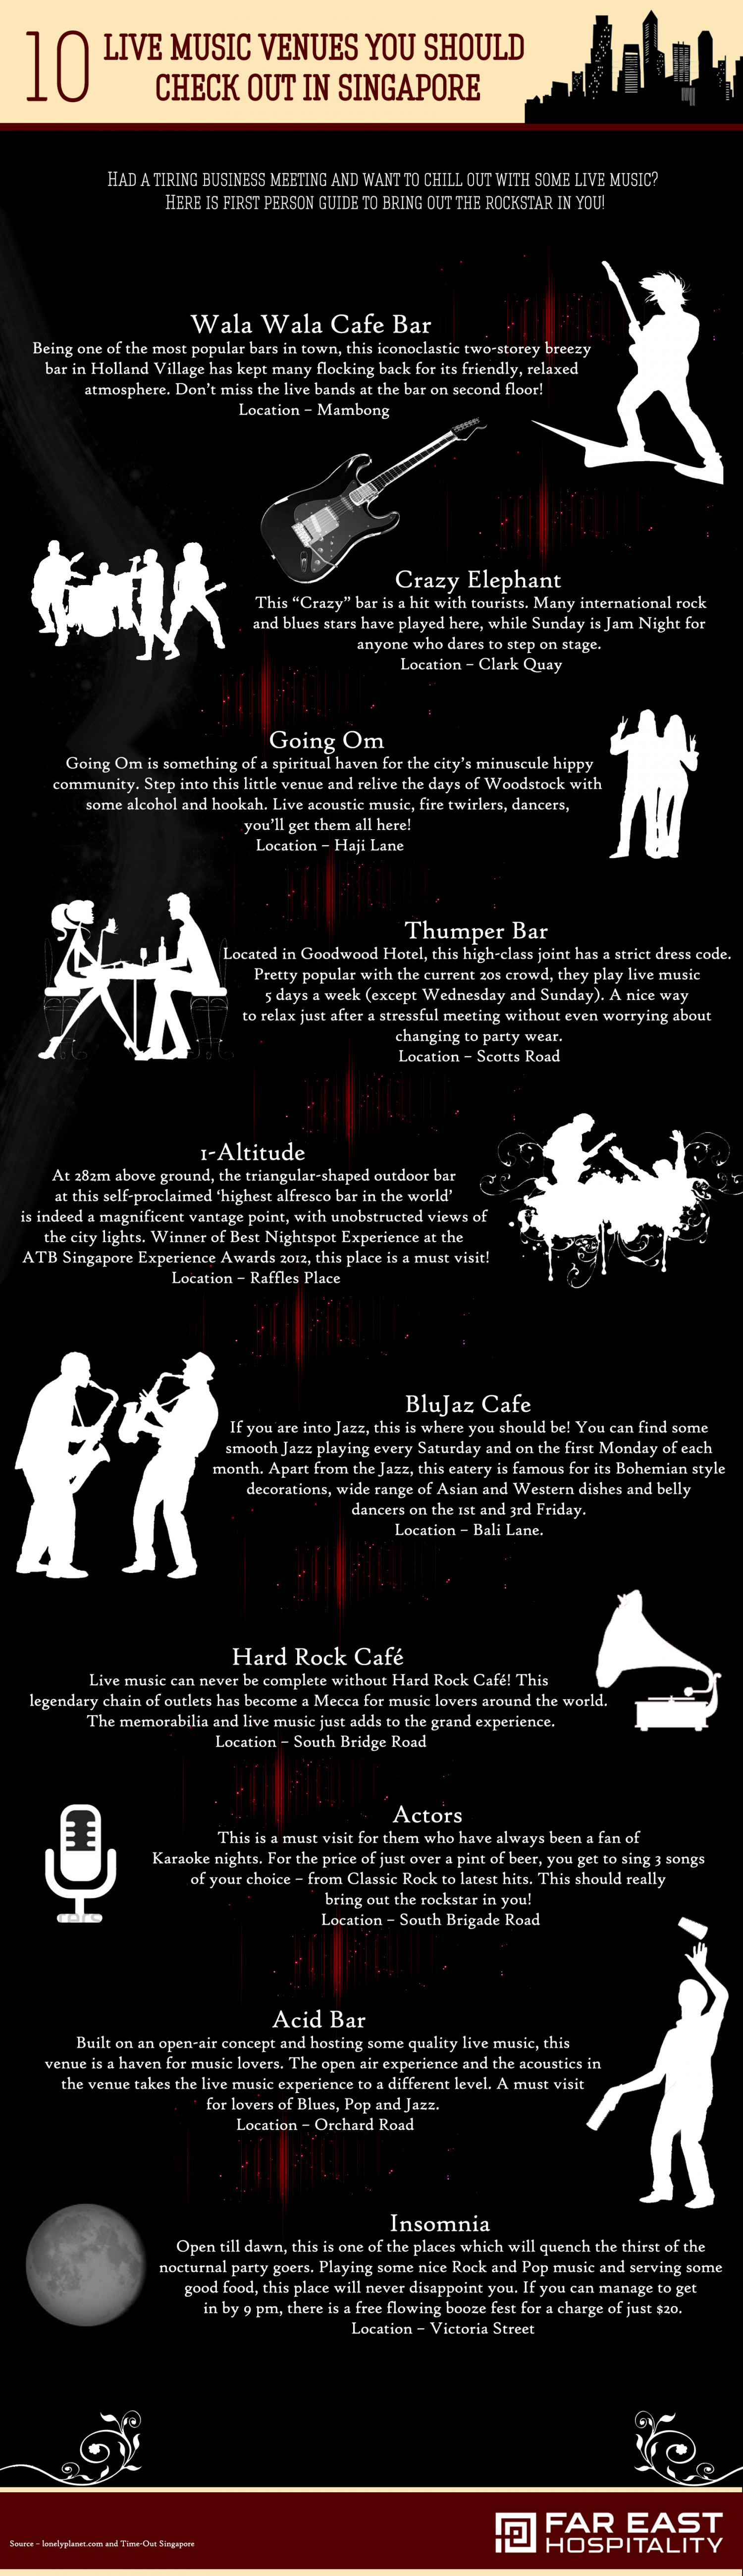 Live Music Venues you should Check Out In Singapore Infographic